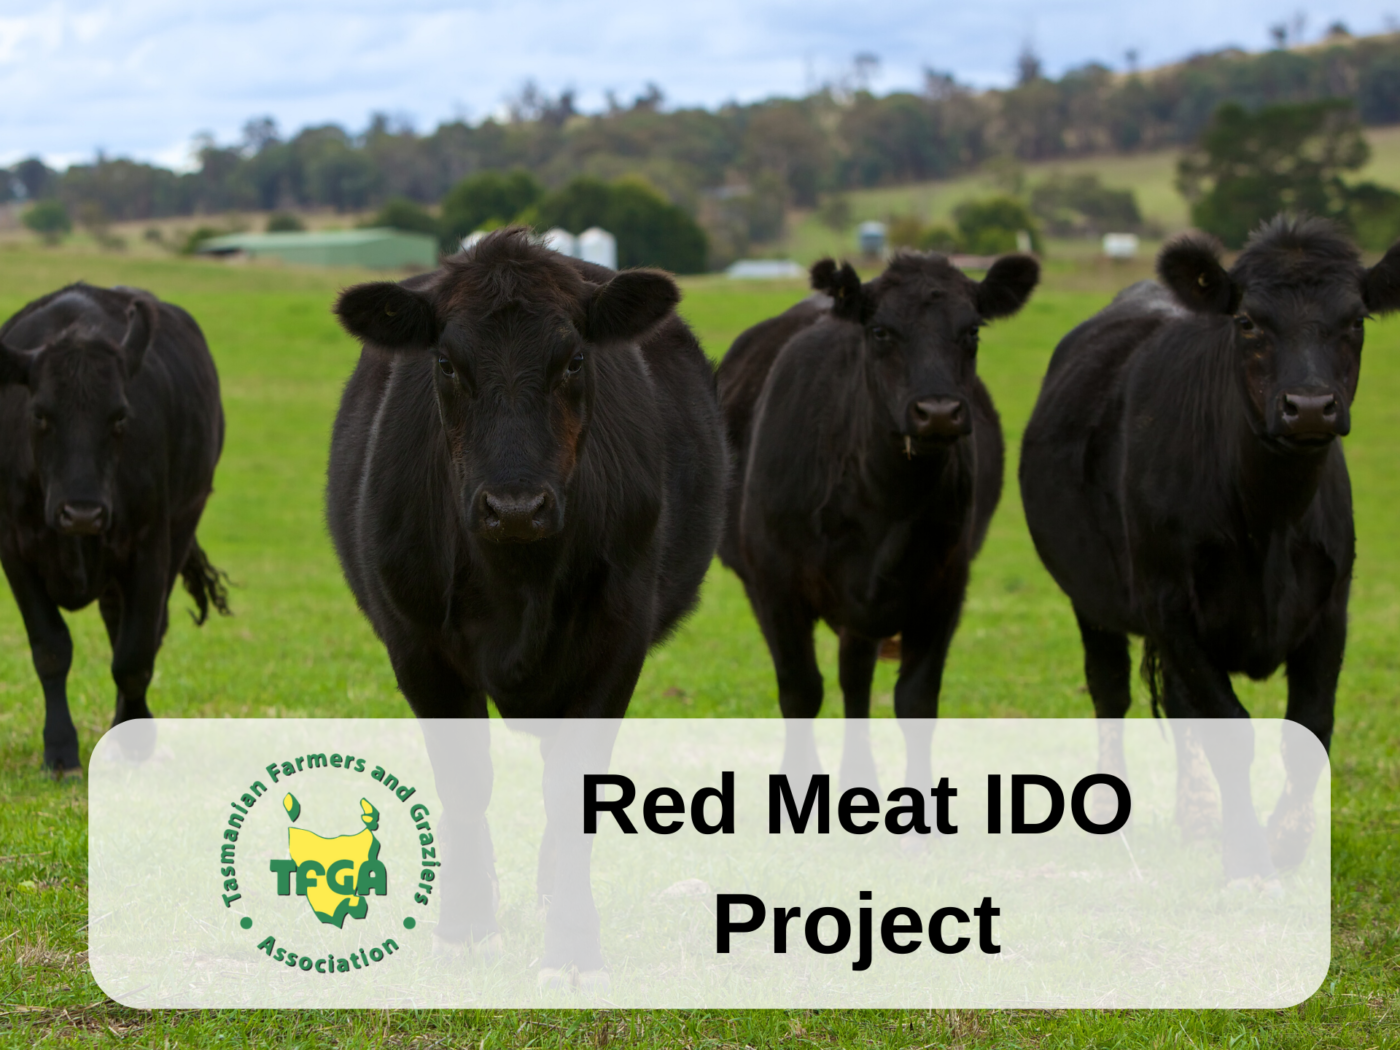 Red Meat IDO Project